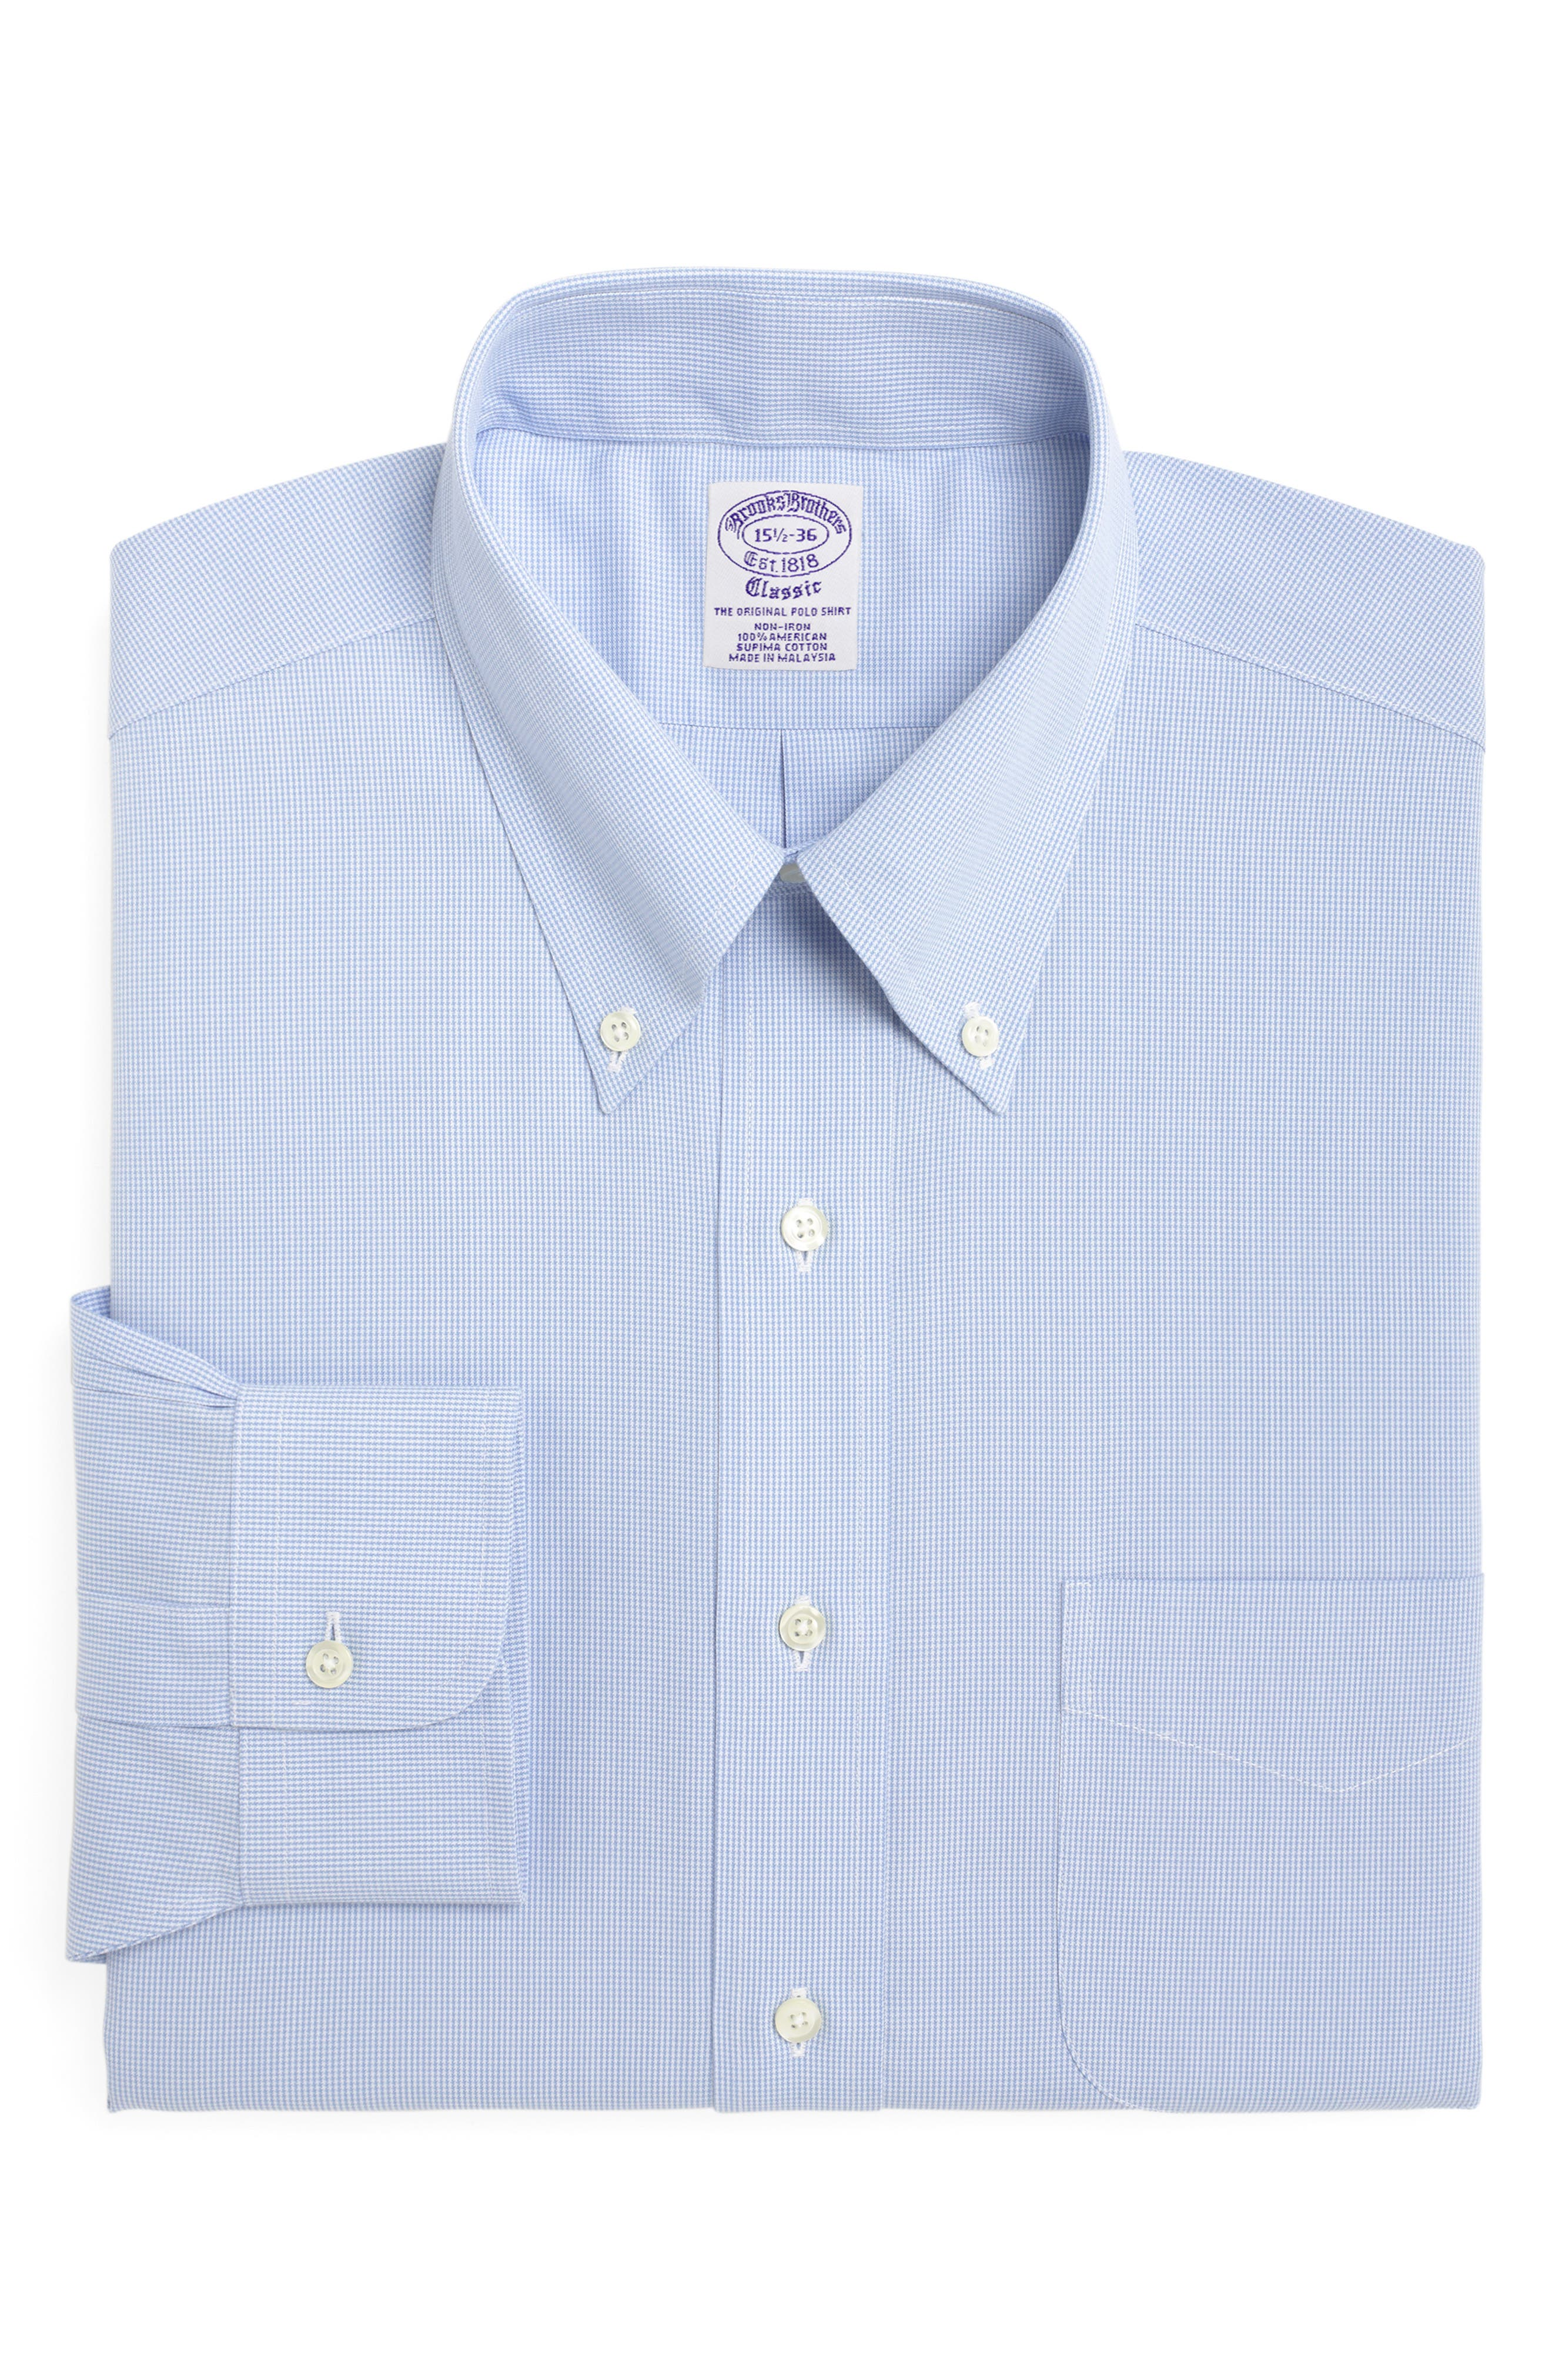 Classic Fit Houndstooth Dress Shirt,                             Main thumbnail 1, color,                             LIGHT/ PASTEL BLUE